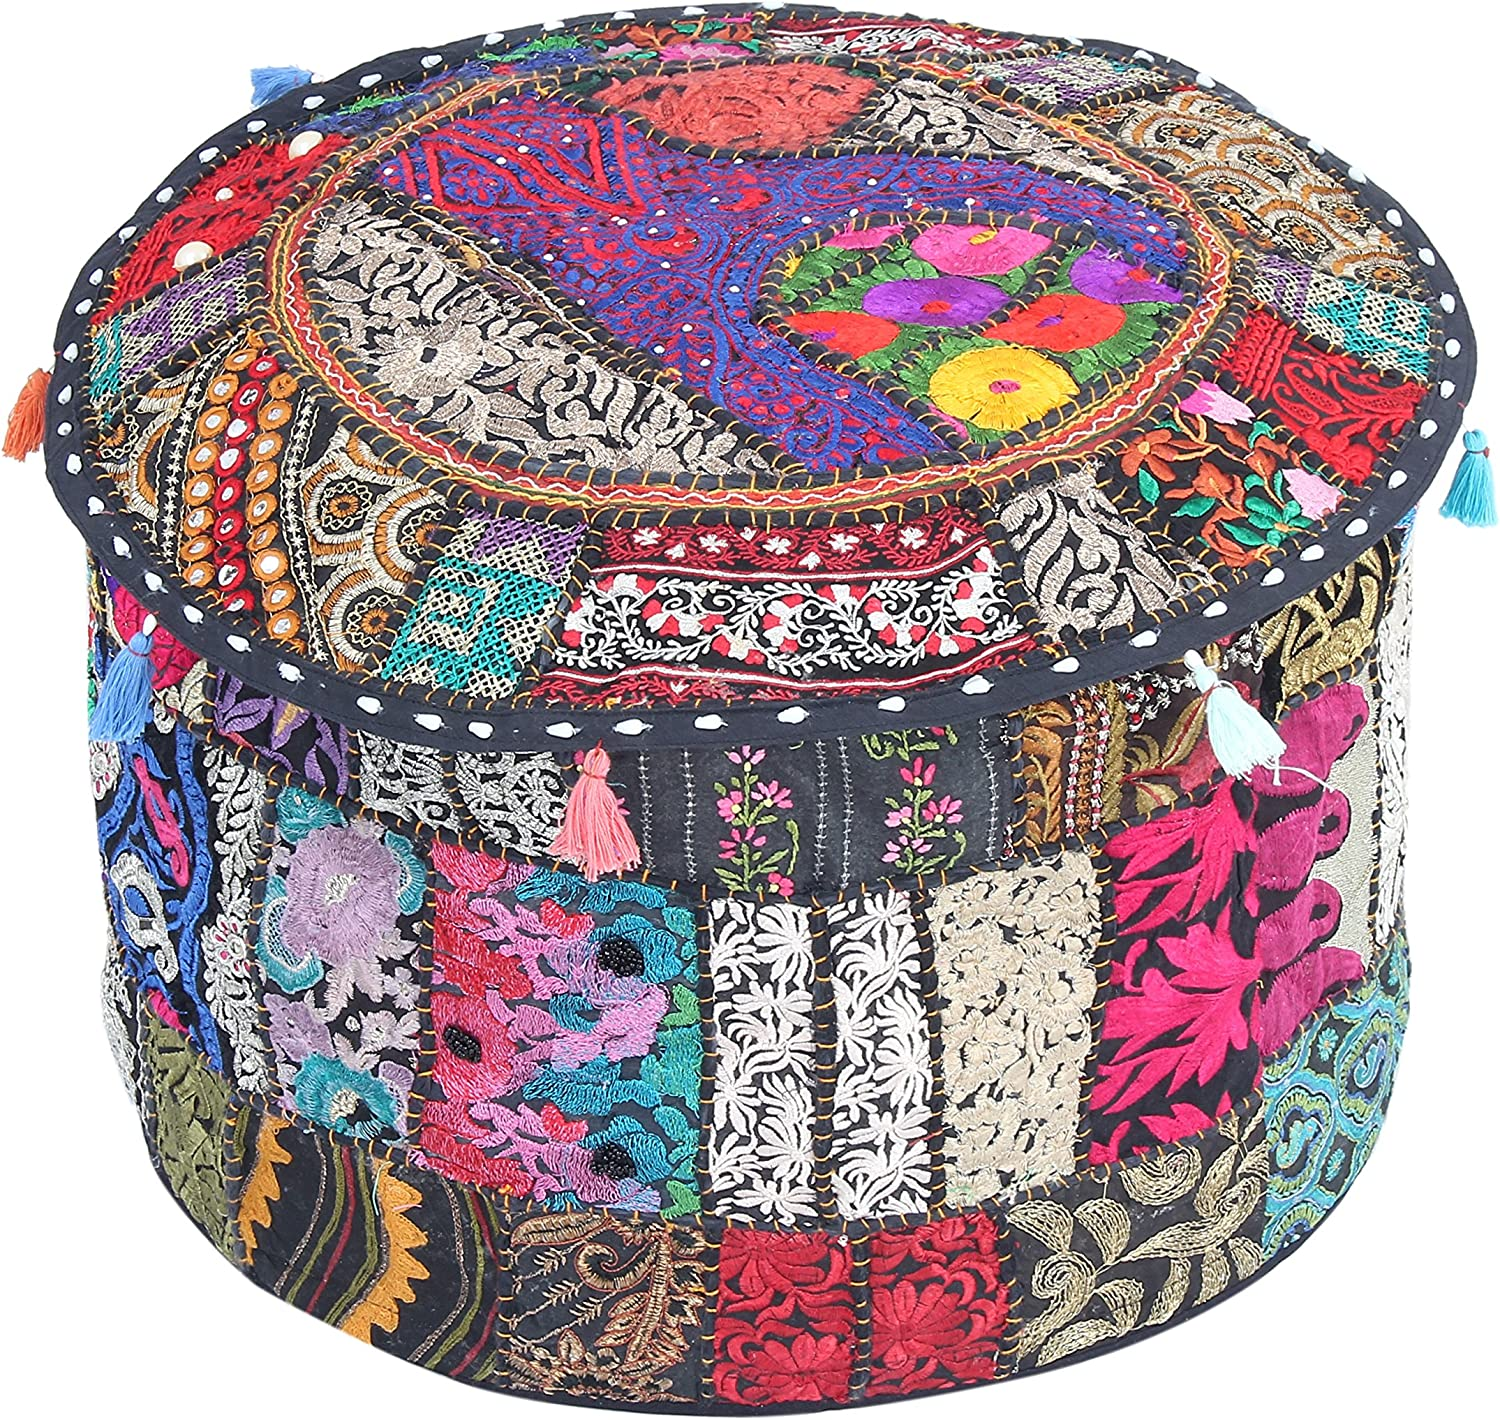 Jaipur Textile Hub Indian Ottoman Pouf Cover Vintage Cotton Patch Work Pouf Cover Traditional Hippie Pouf Cover Indian Ottoman Cover Boho Room Décor